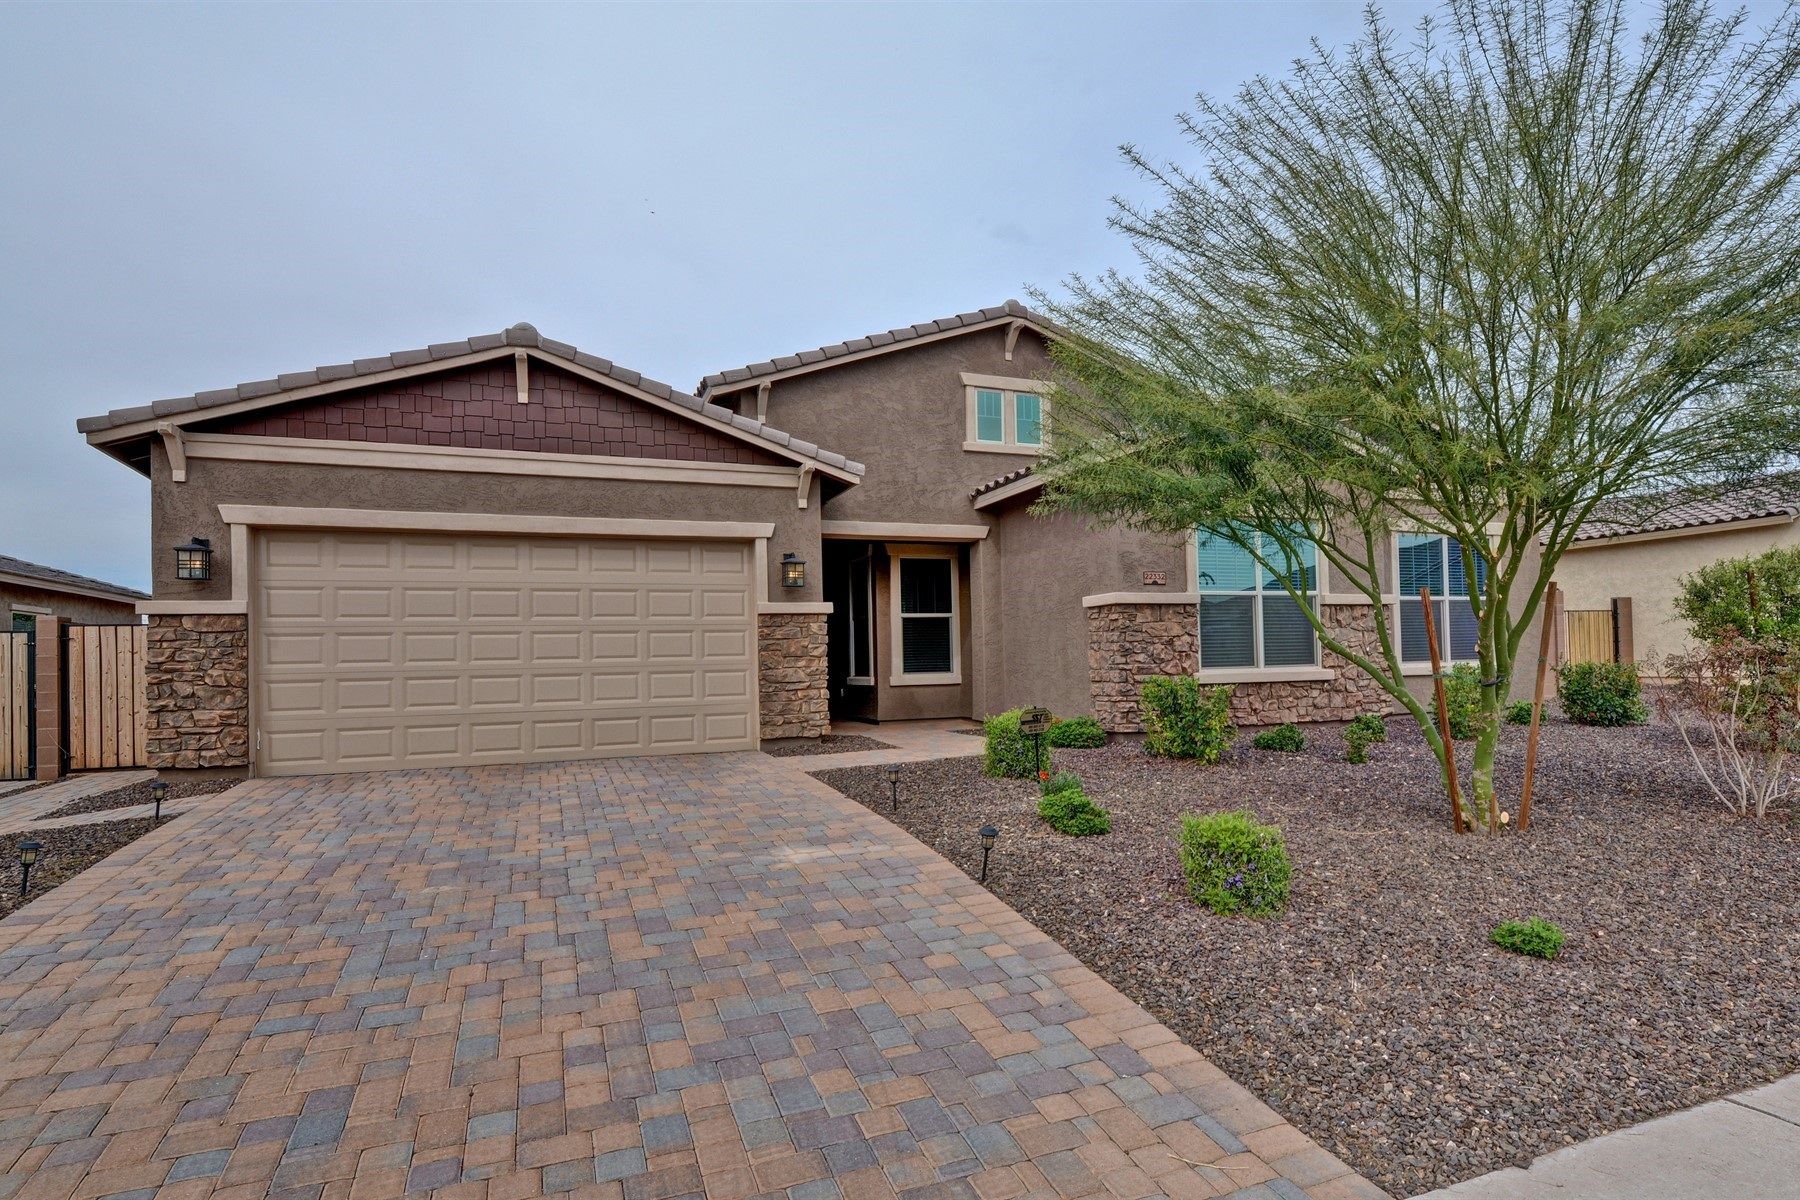 Single Family Homes for Sale at The Meadows at Camino A Lago 22332 N 94TH LN Peoria, Arizona 85383 United States